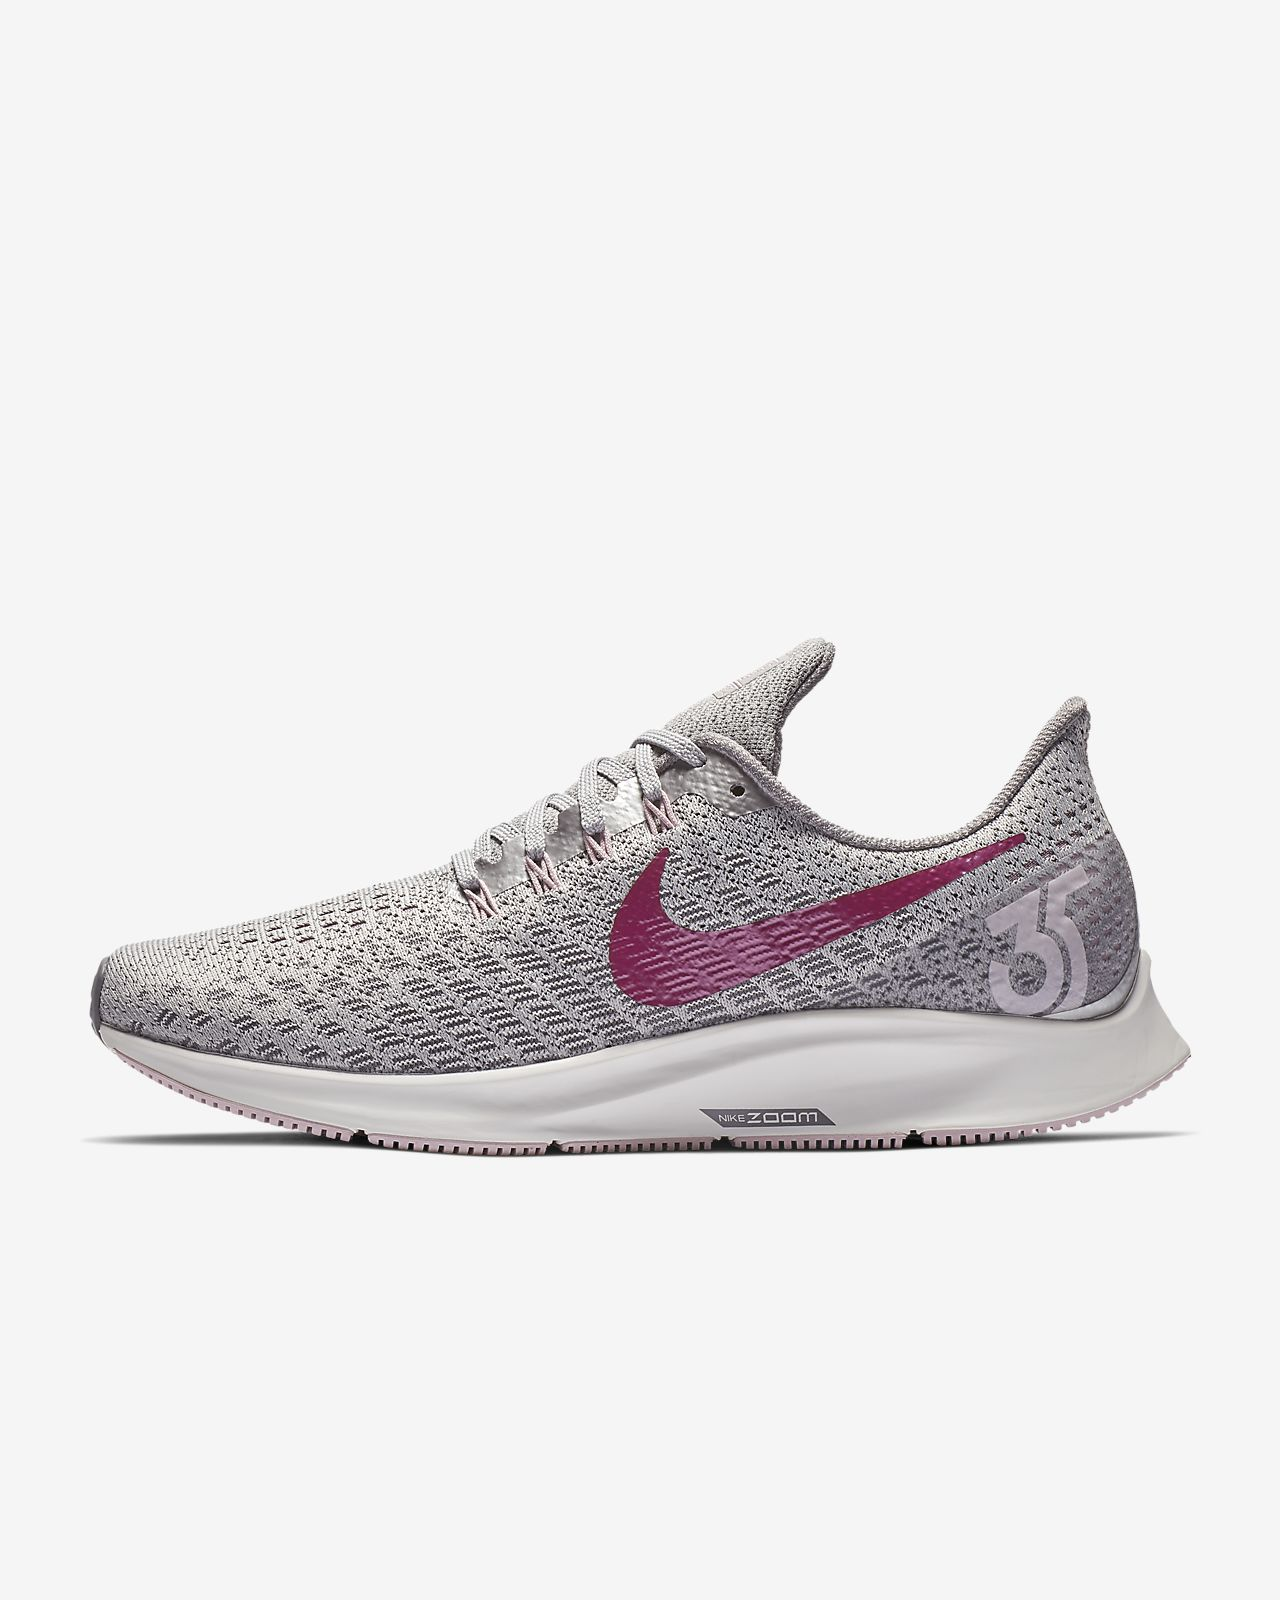 b3fdc32be70c1 Nike Air Zoom Pegasus 35 Women s Running Shoe. Nike.com